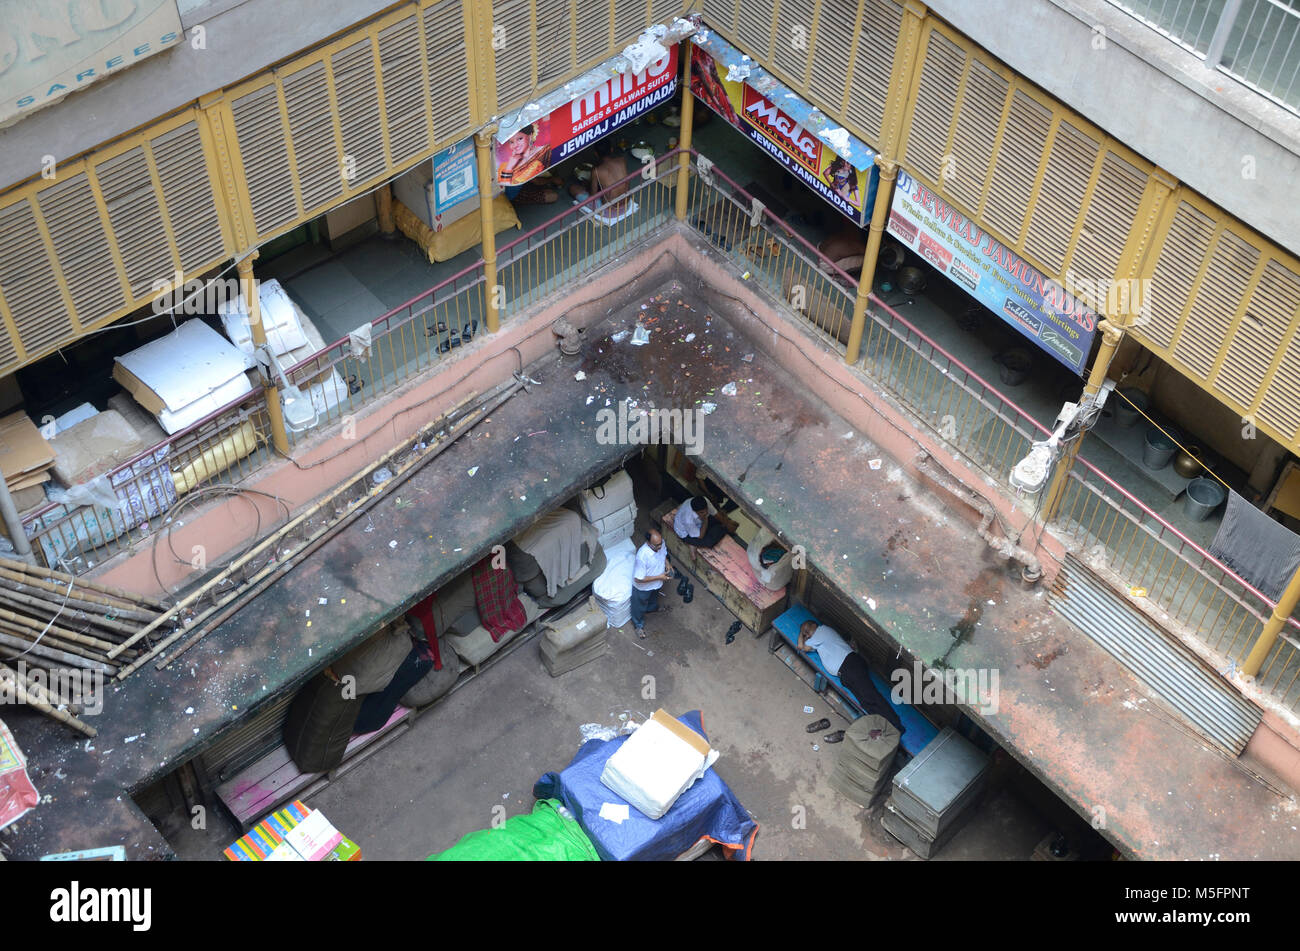 courtyard in old building, Kolkata, West Bengal, India, Asia - Stock Image